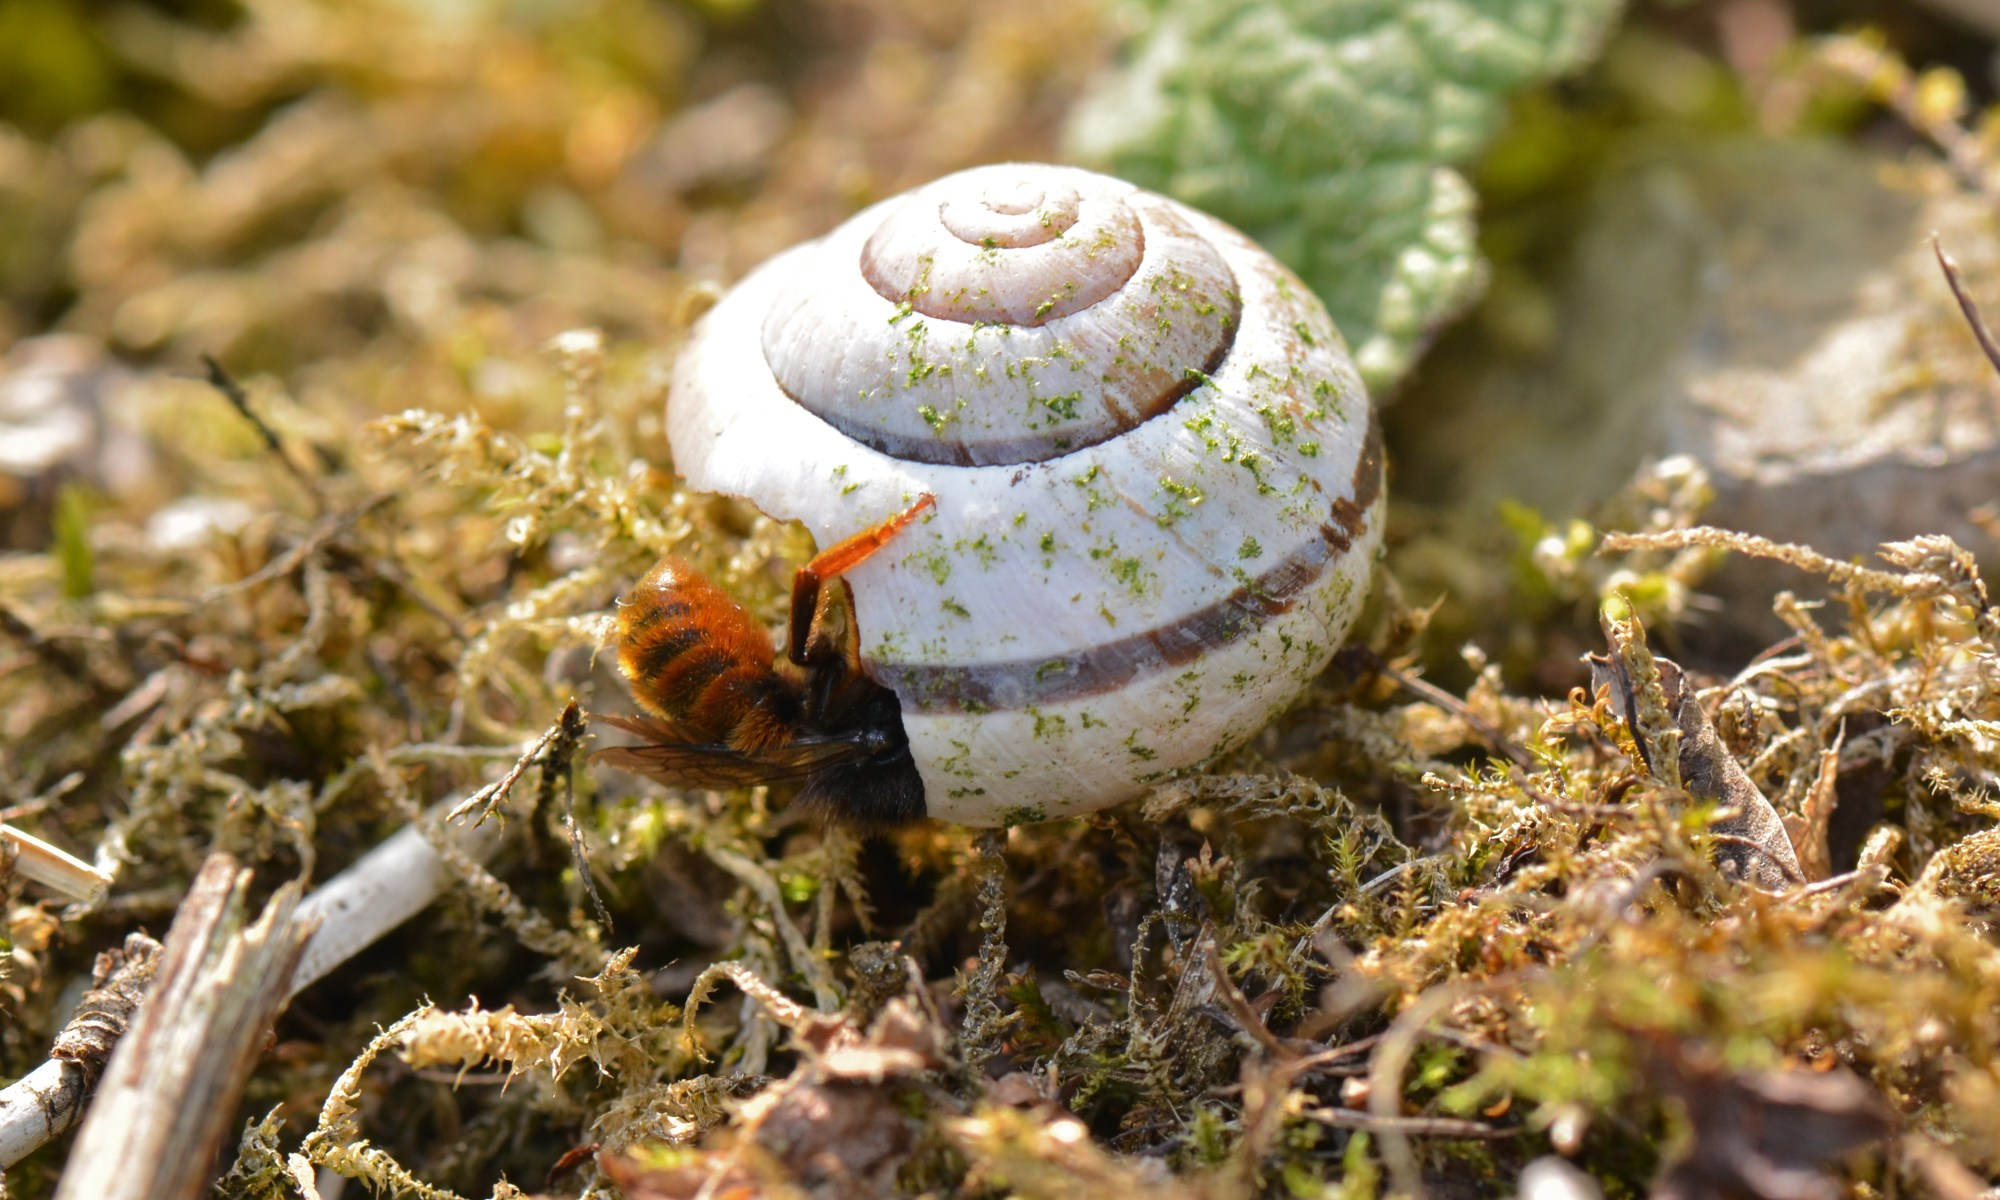 Osmia bicolor bee preparing a nest in a discarded snail shell